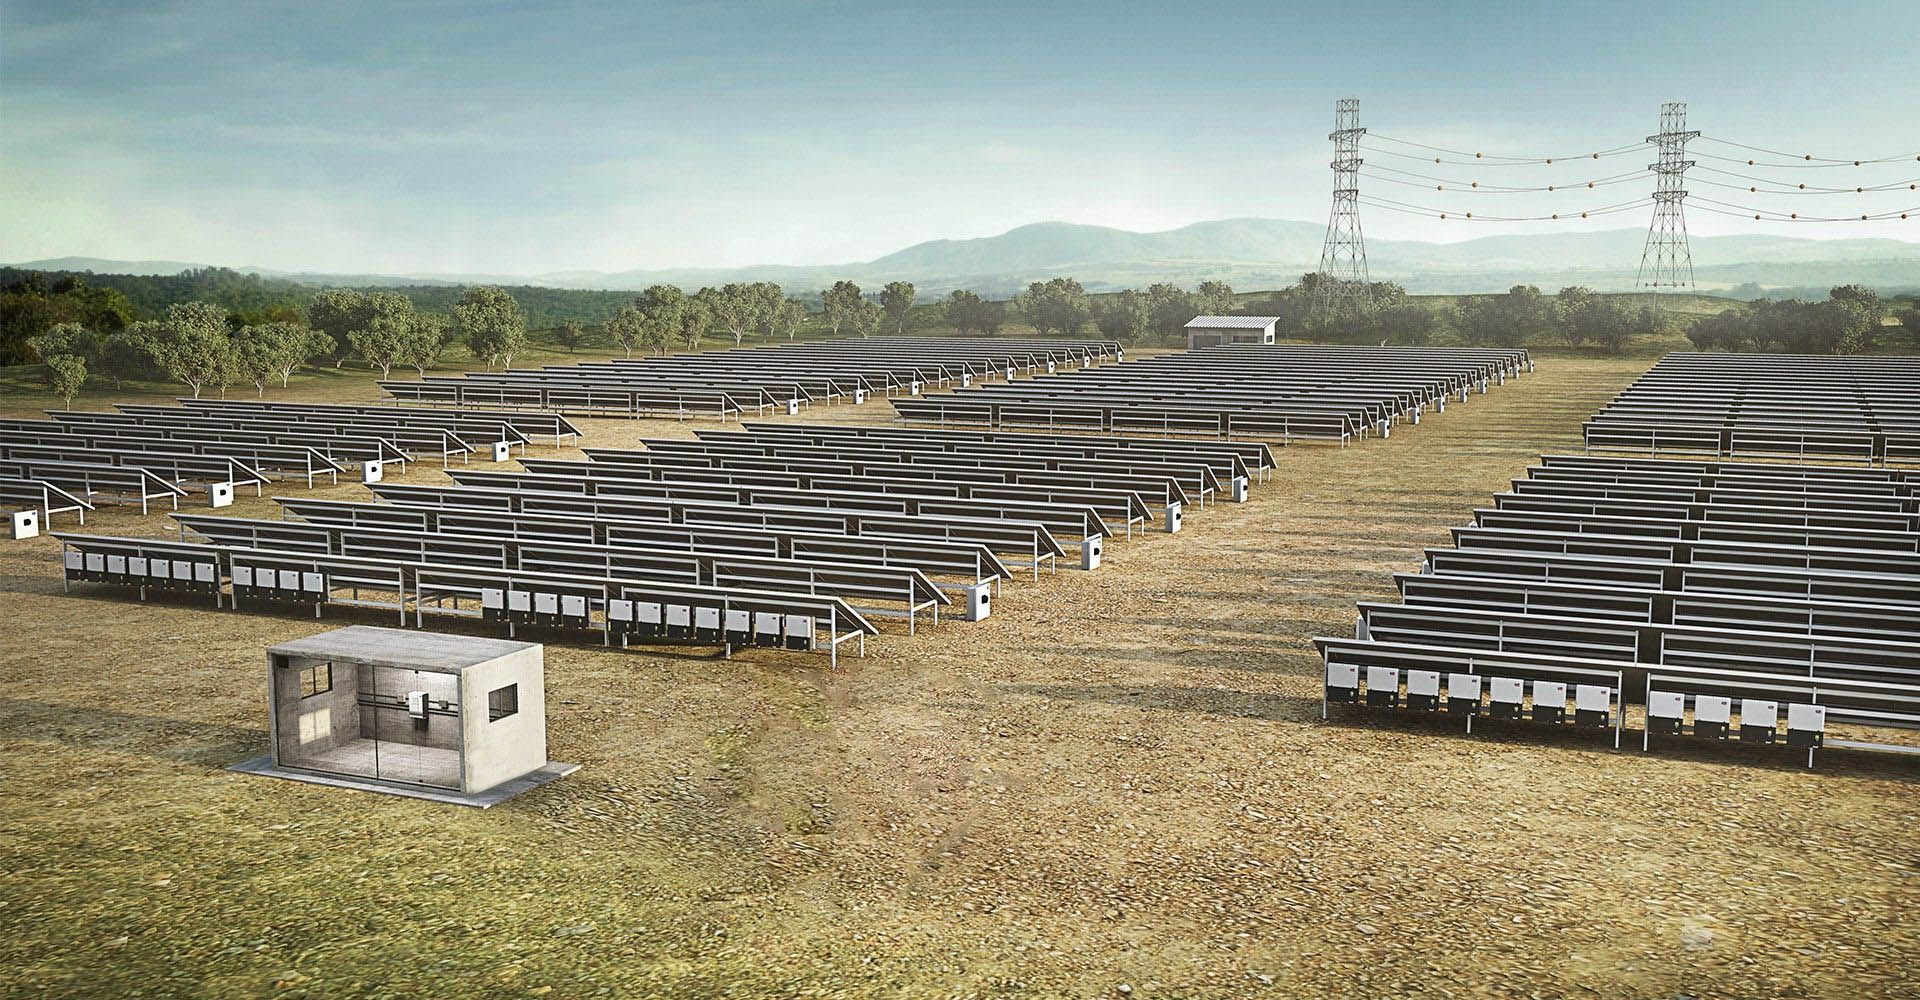 Pv Power Plants Sma Solar Plant General Layout Safe String Collection With The Combiner Boxes All Strings In Field Are Collected Safely